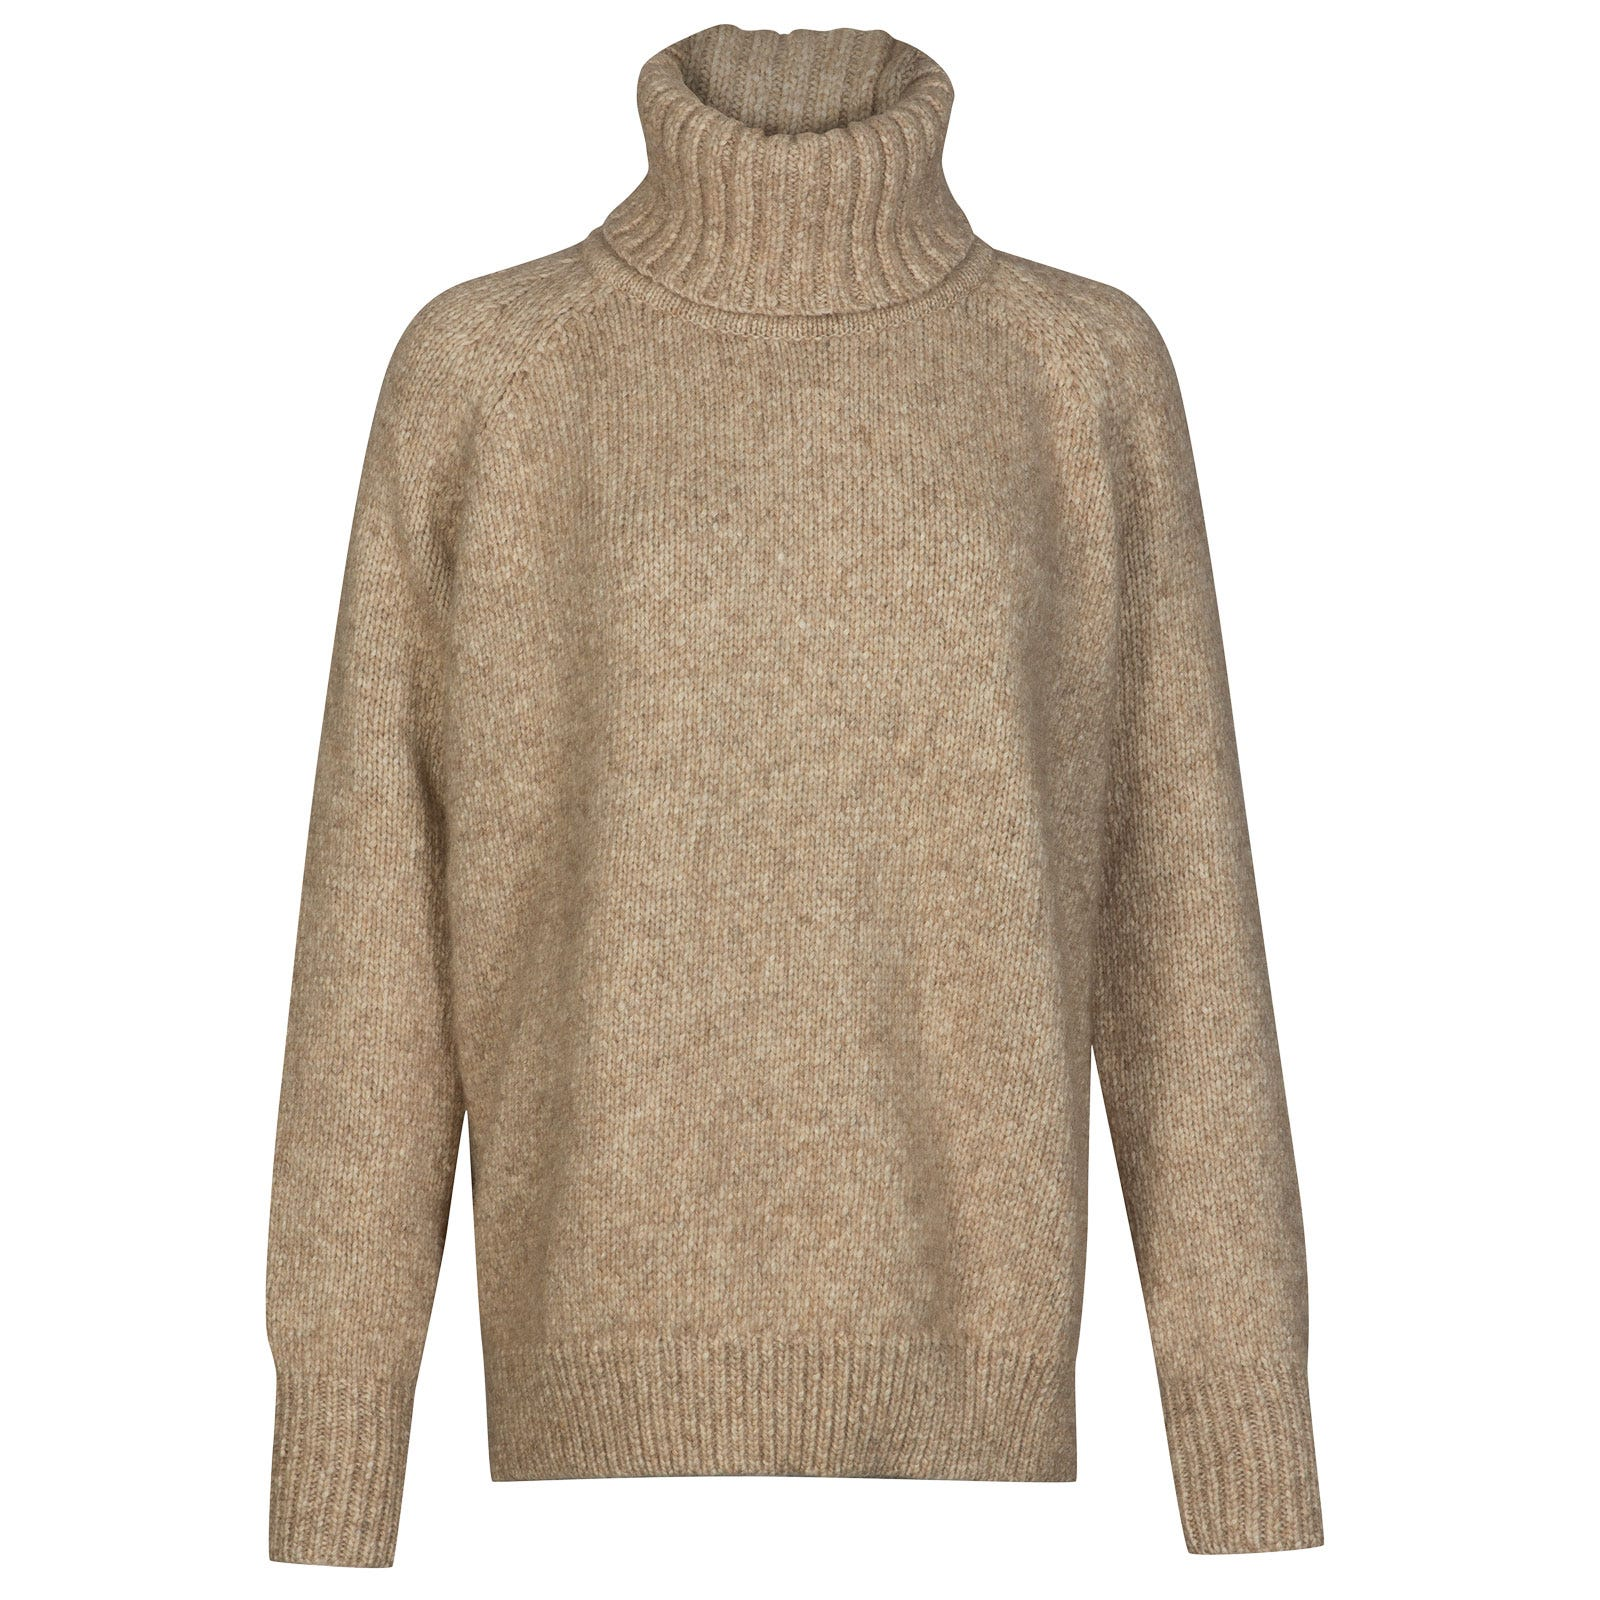 John Smedley Morar Alpaca, Wool & Cotton Sweater in Camel-S